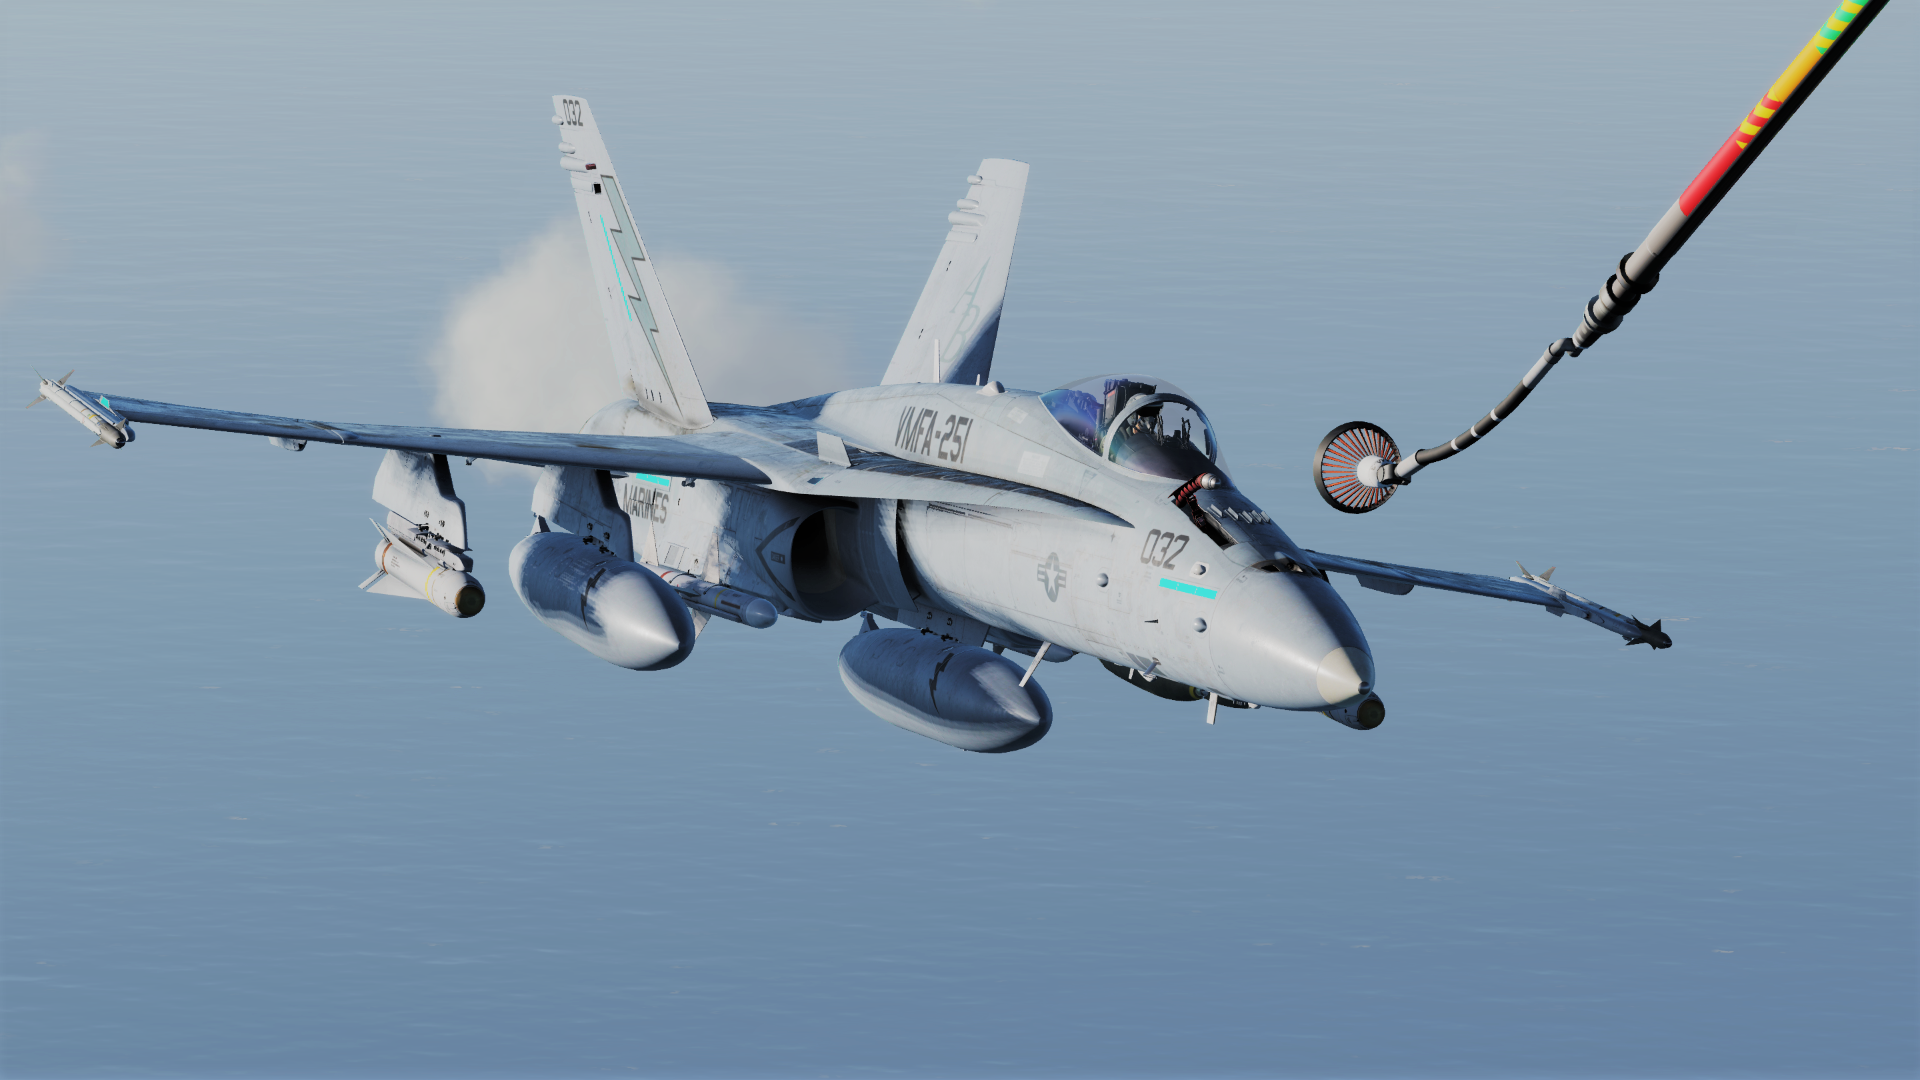 DCS Carrier Life at Sea: Pictures - SimHQ Forums